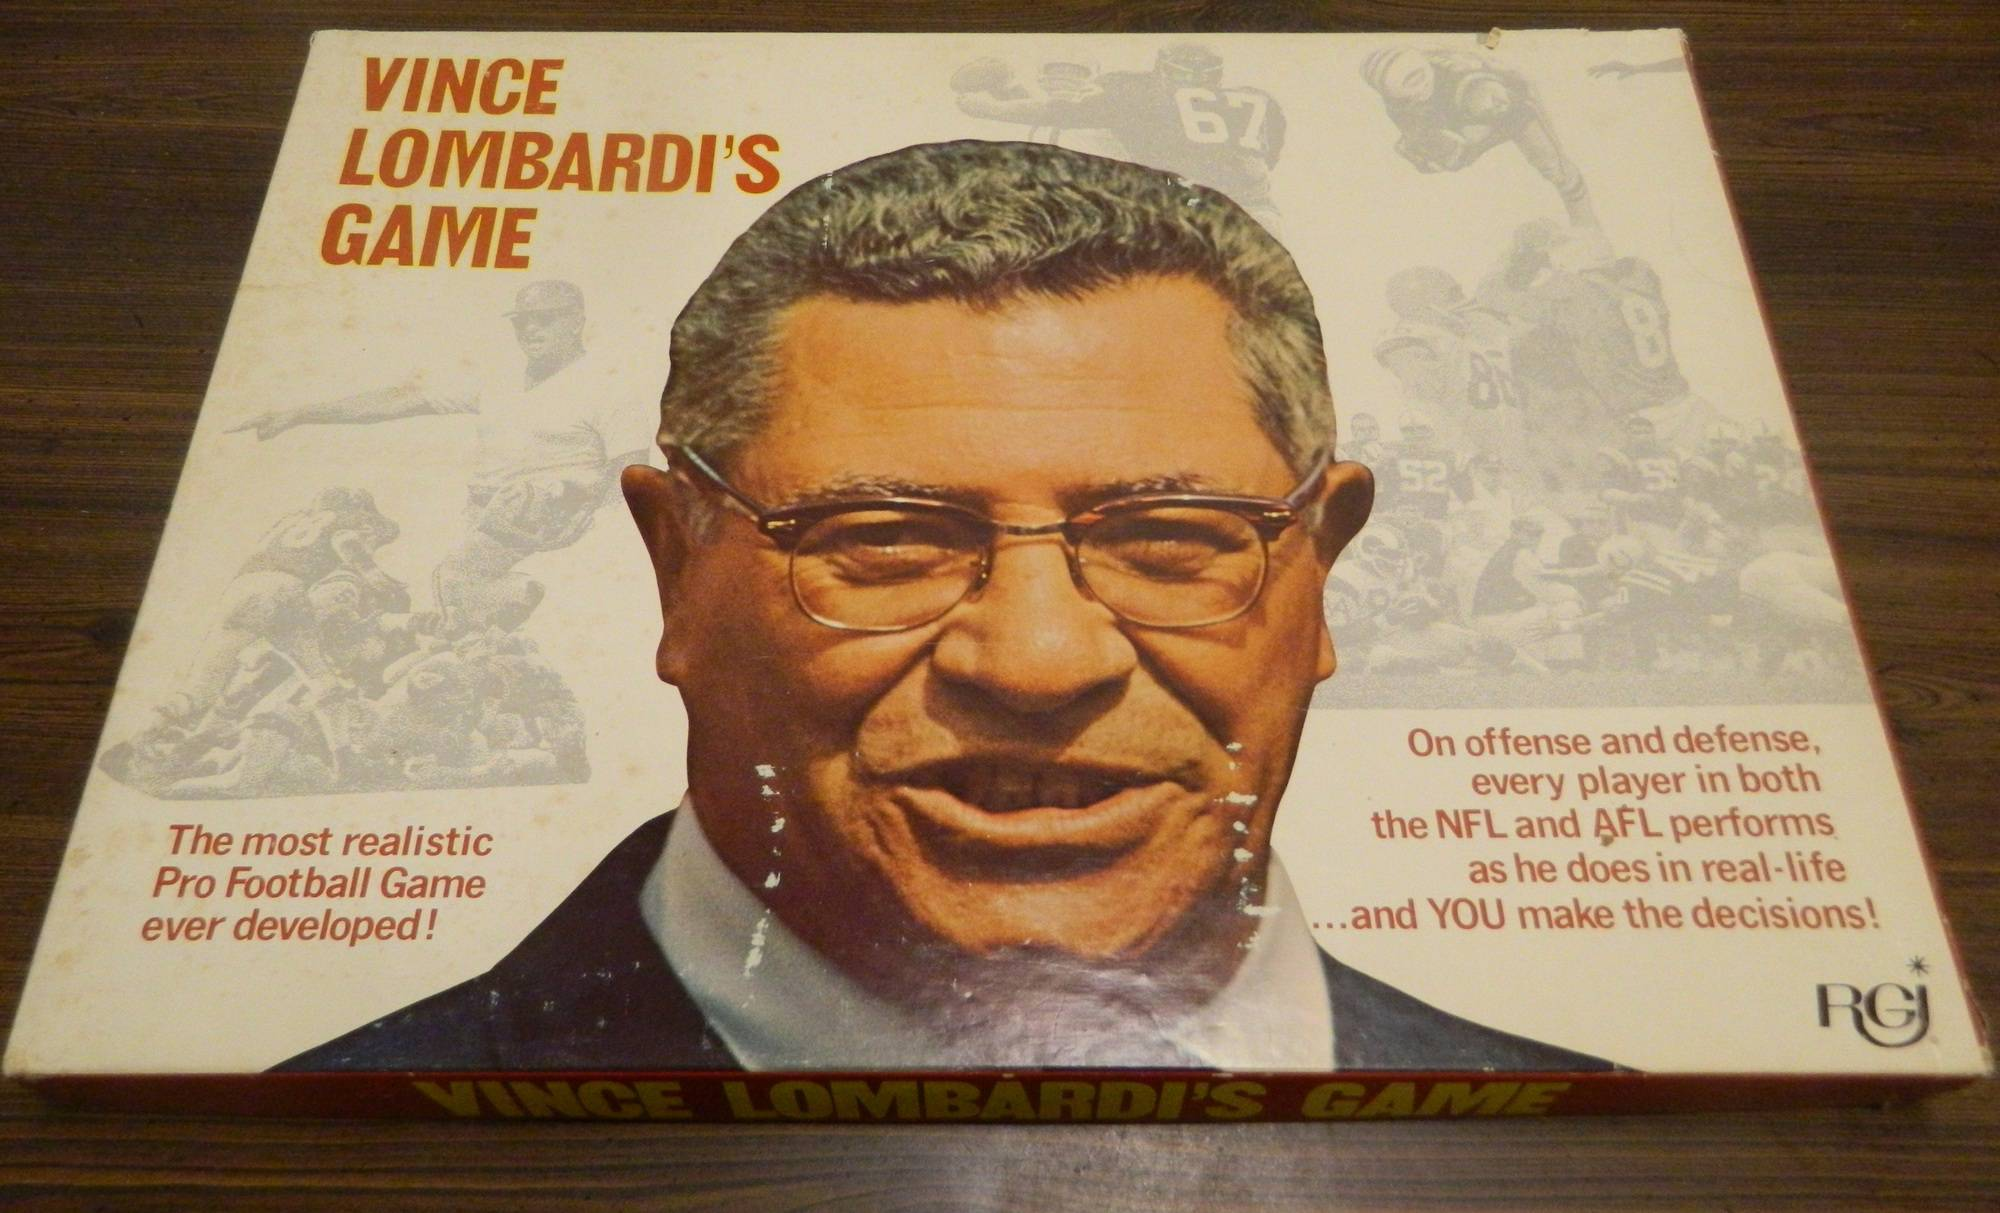 Box for Vince Lombardi's Game